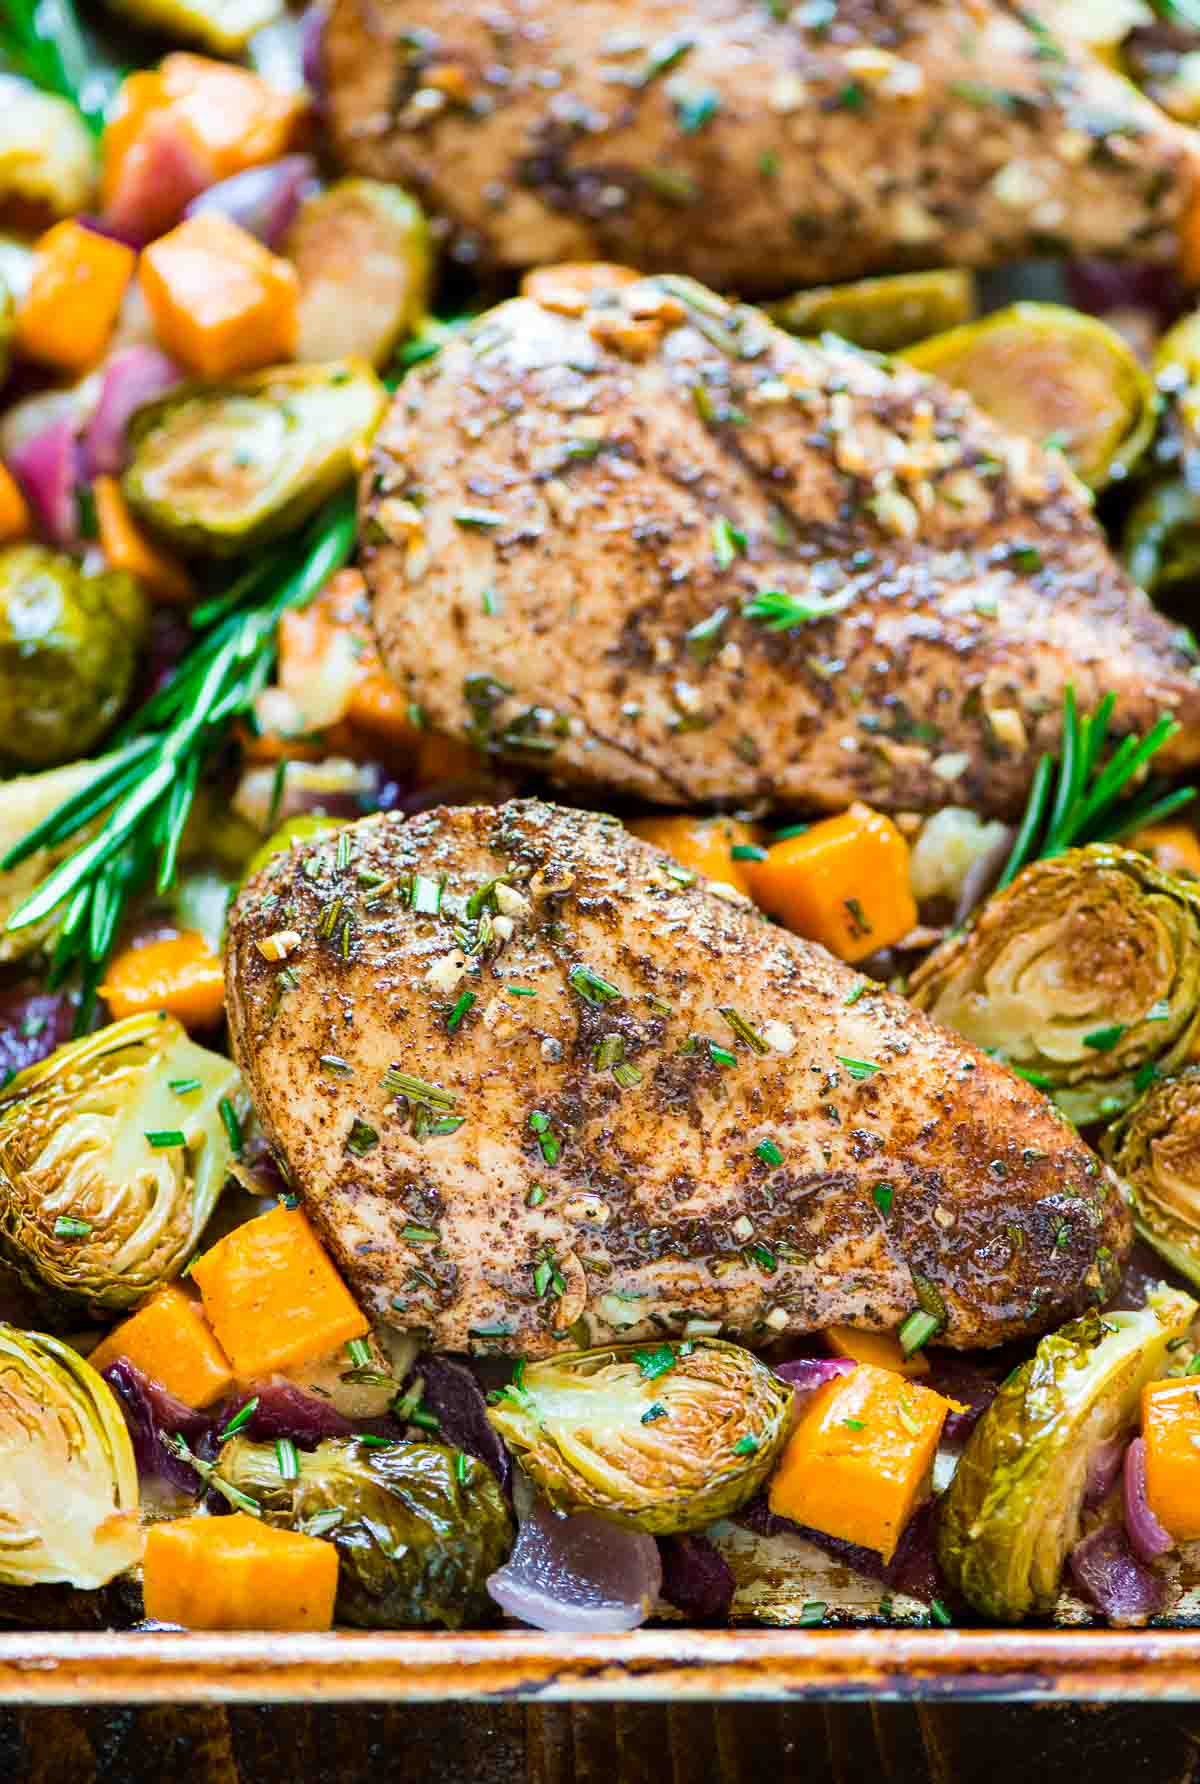 ONE PAN Paleo Harvest Chicken Dinner with Apples, Sweet Potatoes, and Brussels Sprouts. Easy and healthy sheet pan recipe that's perfect for busy weeknights. {Paleo, Gluten Free, and Dairy Free!} @wellplated